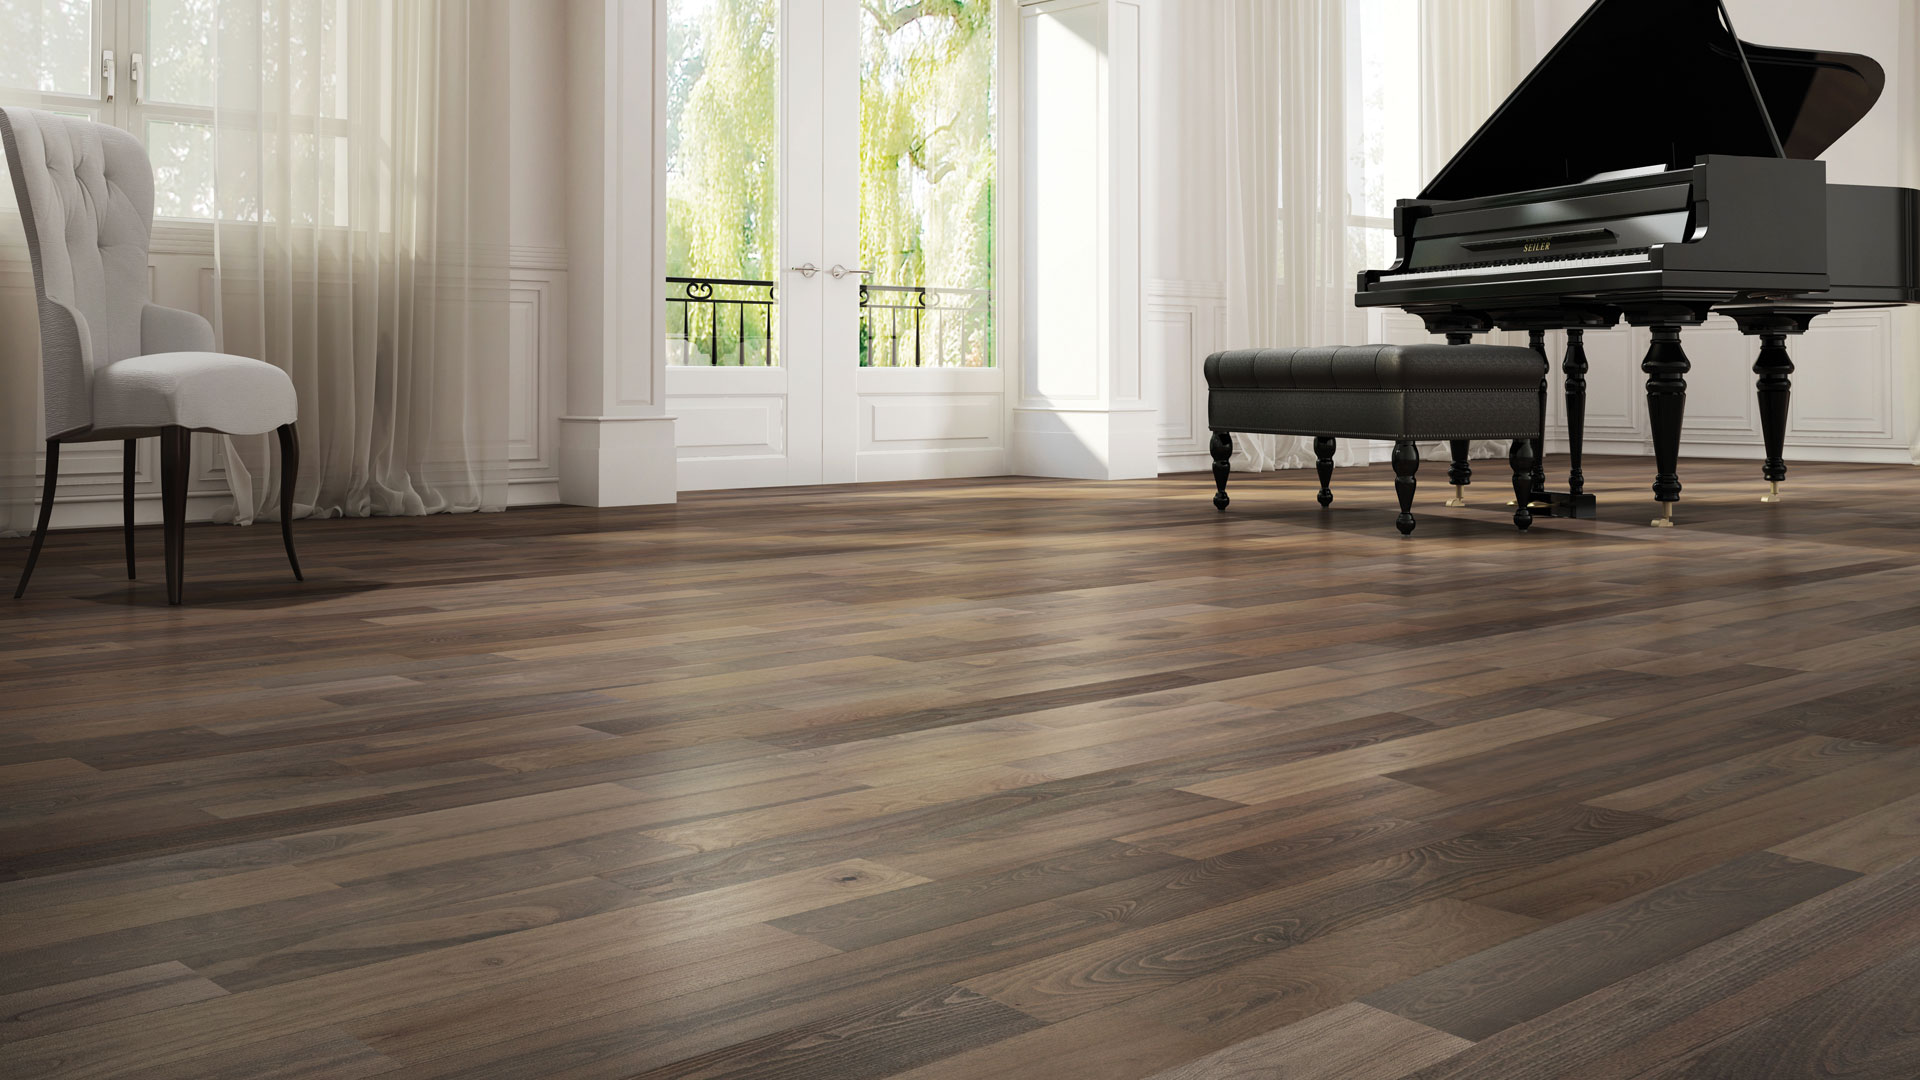 latest 3 hardwood flooring trends lauzon flooring ForTrends In Wood Flooring